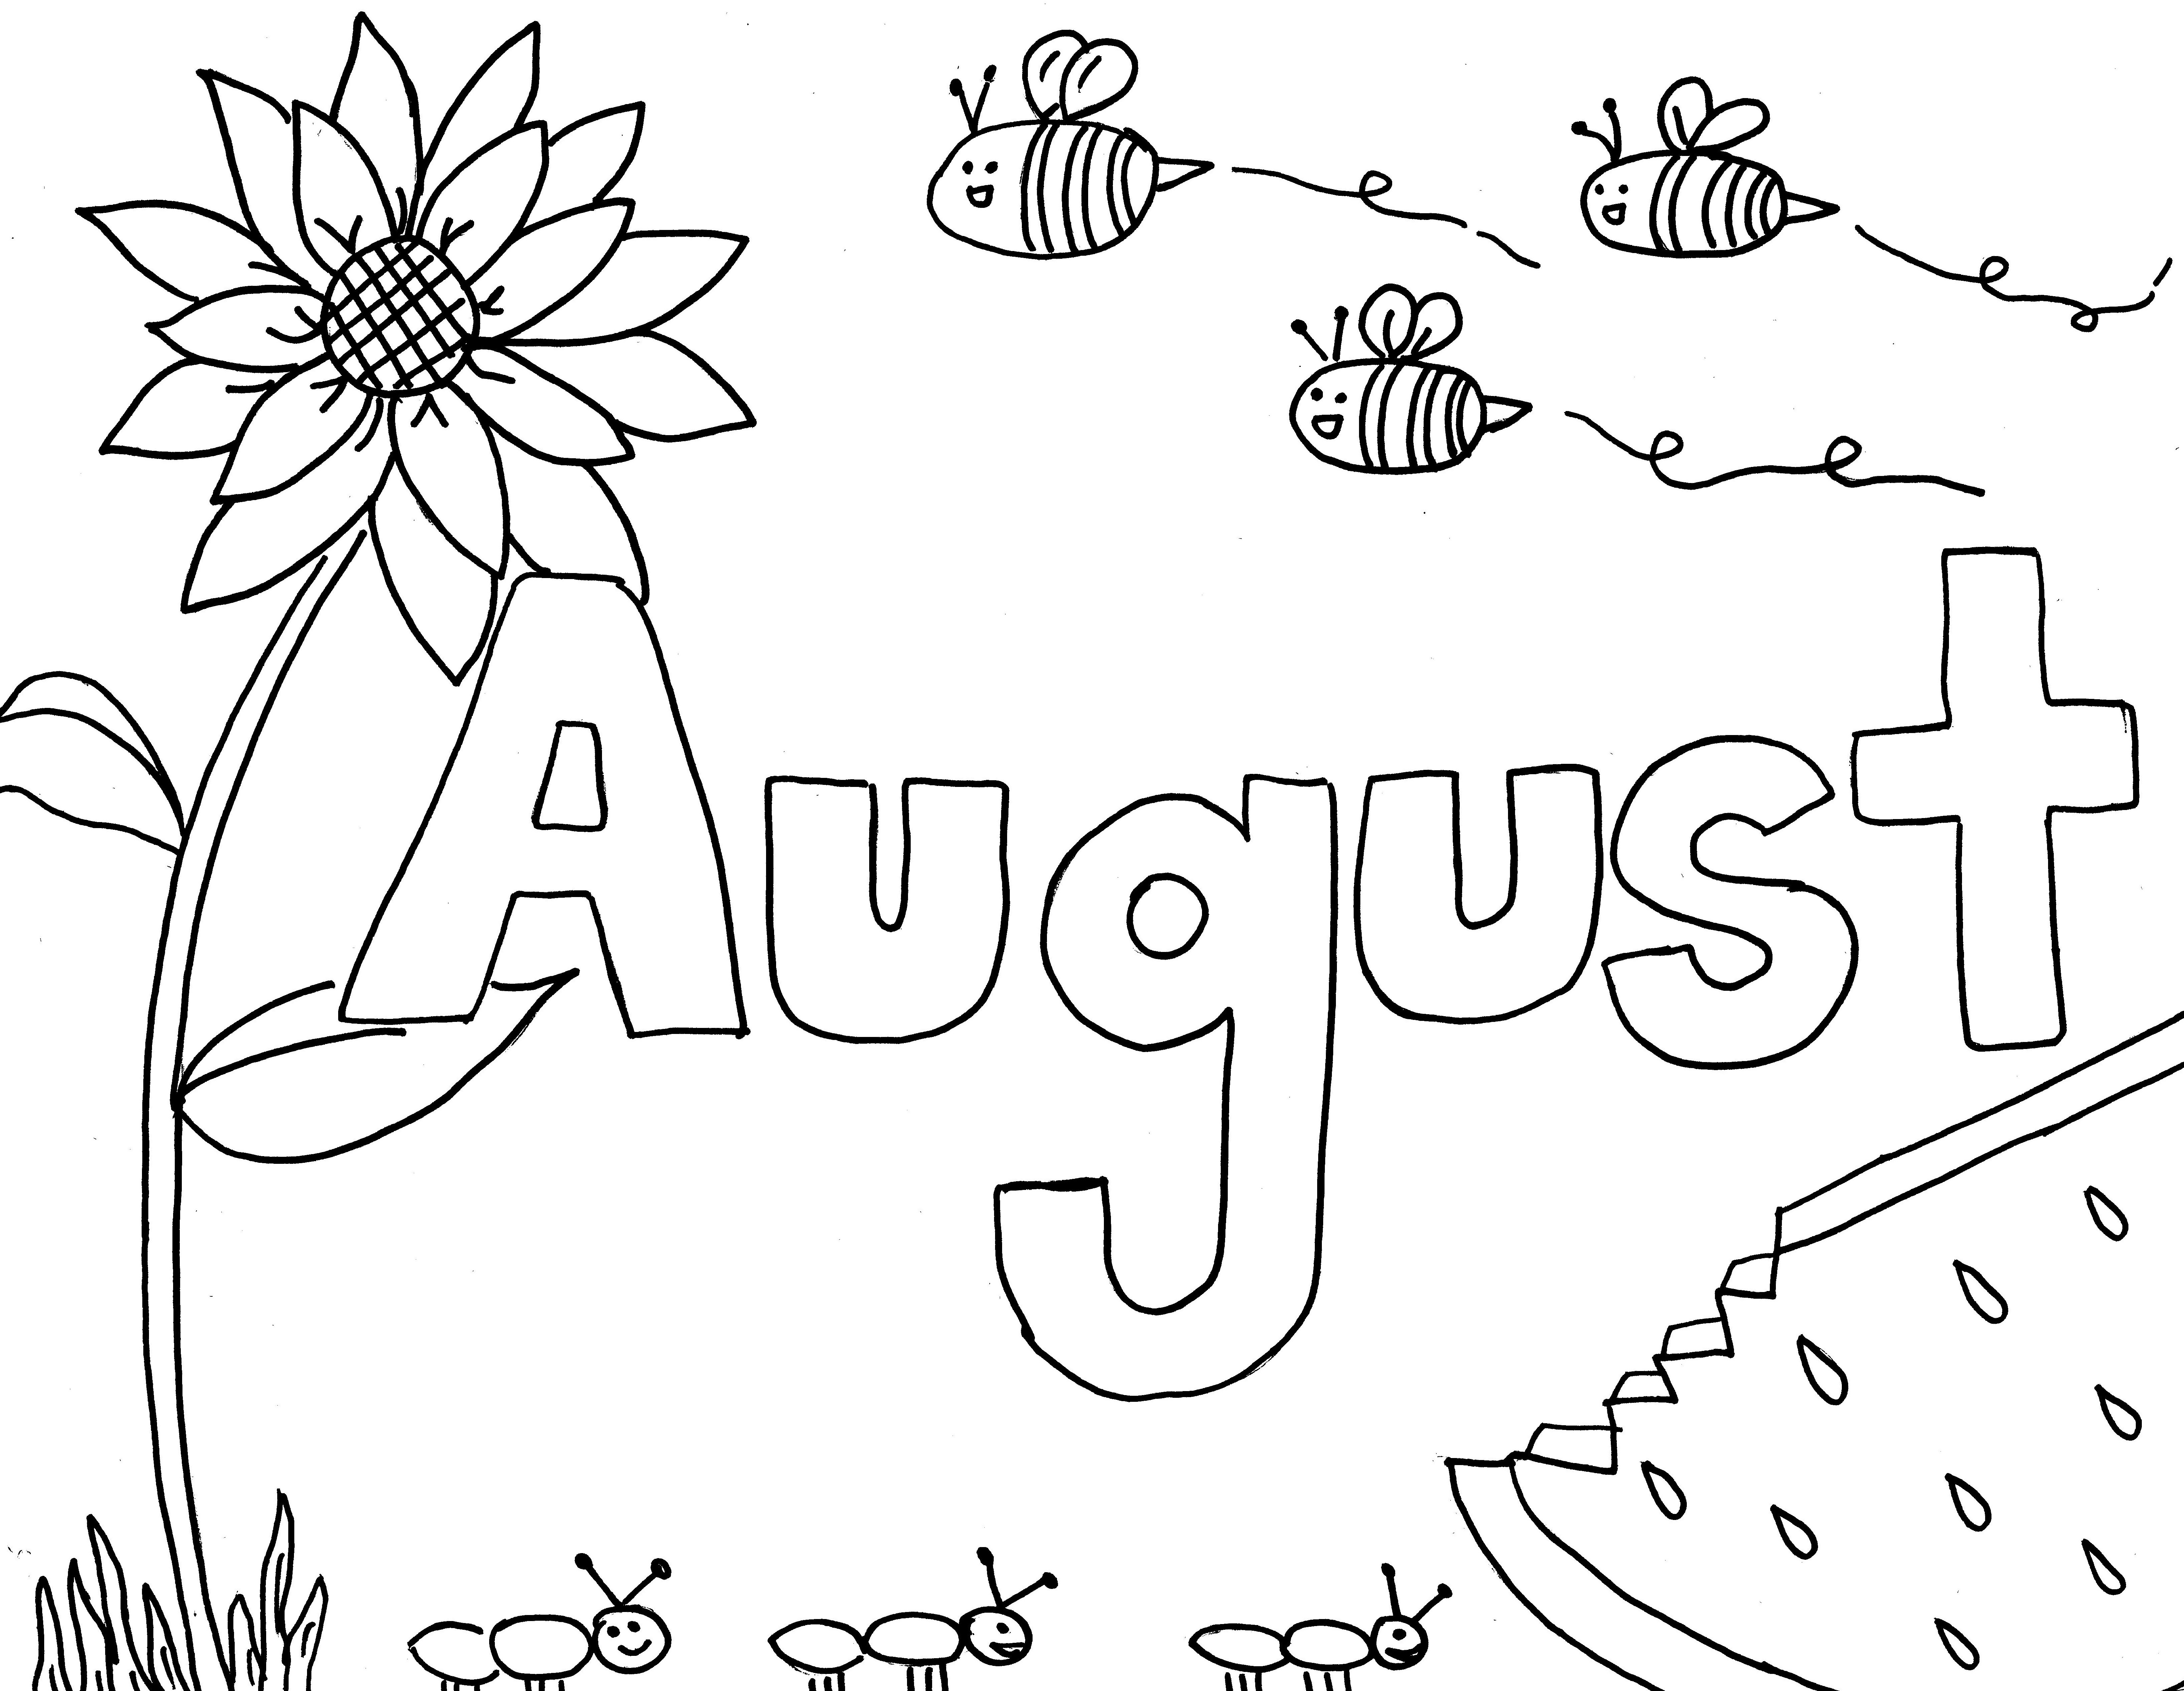 My Room Coloring Pages Printable Monthly Coloring Pages The Empowered Provider